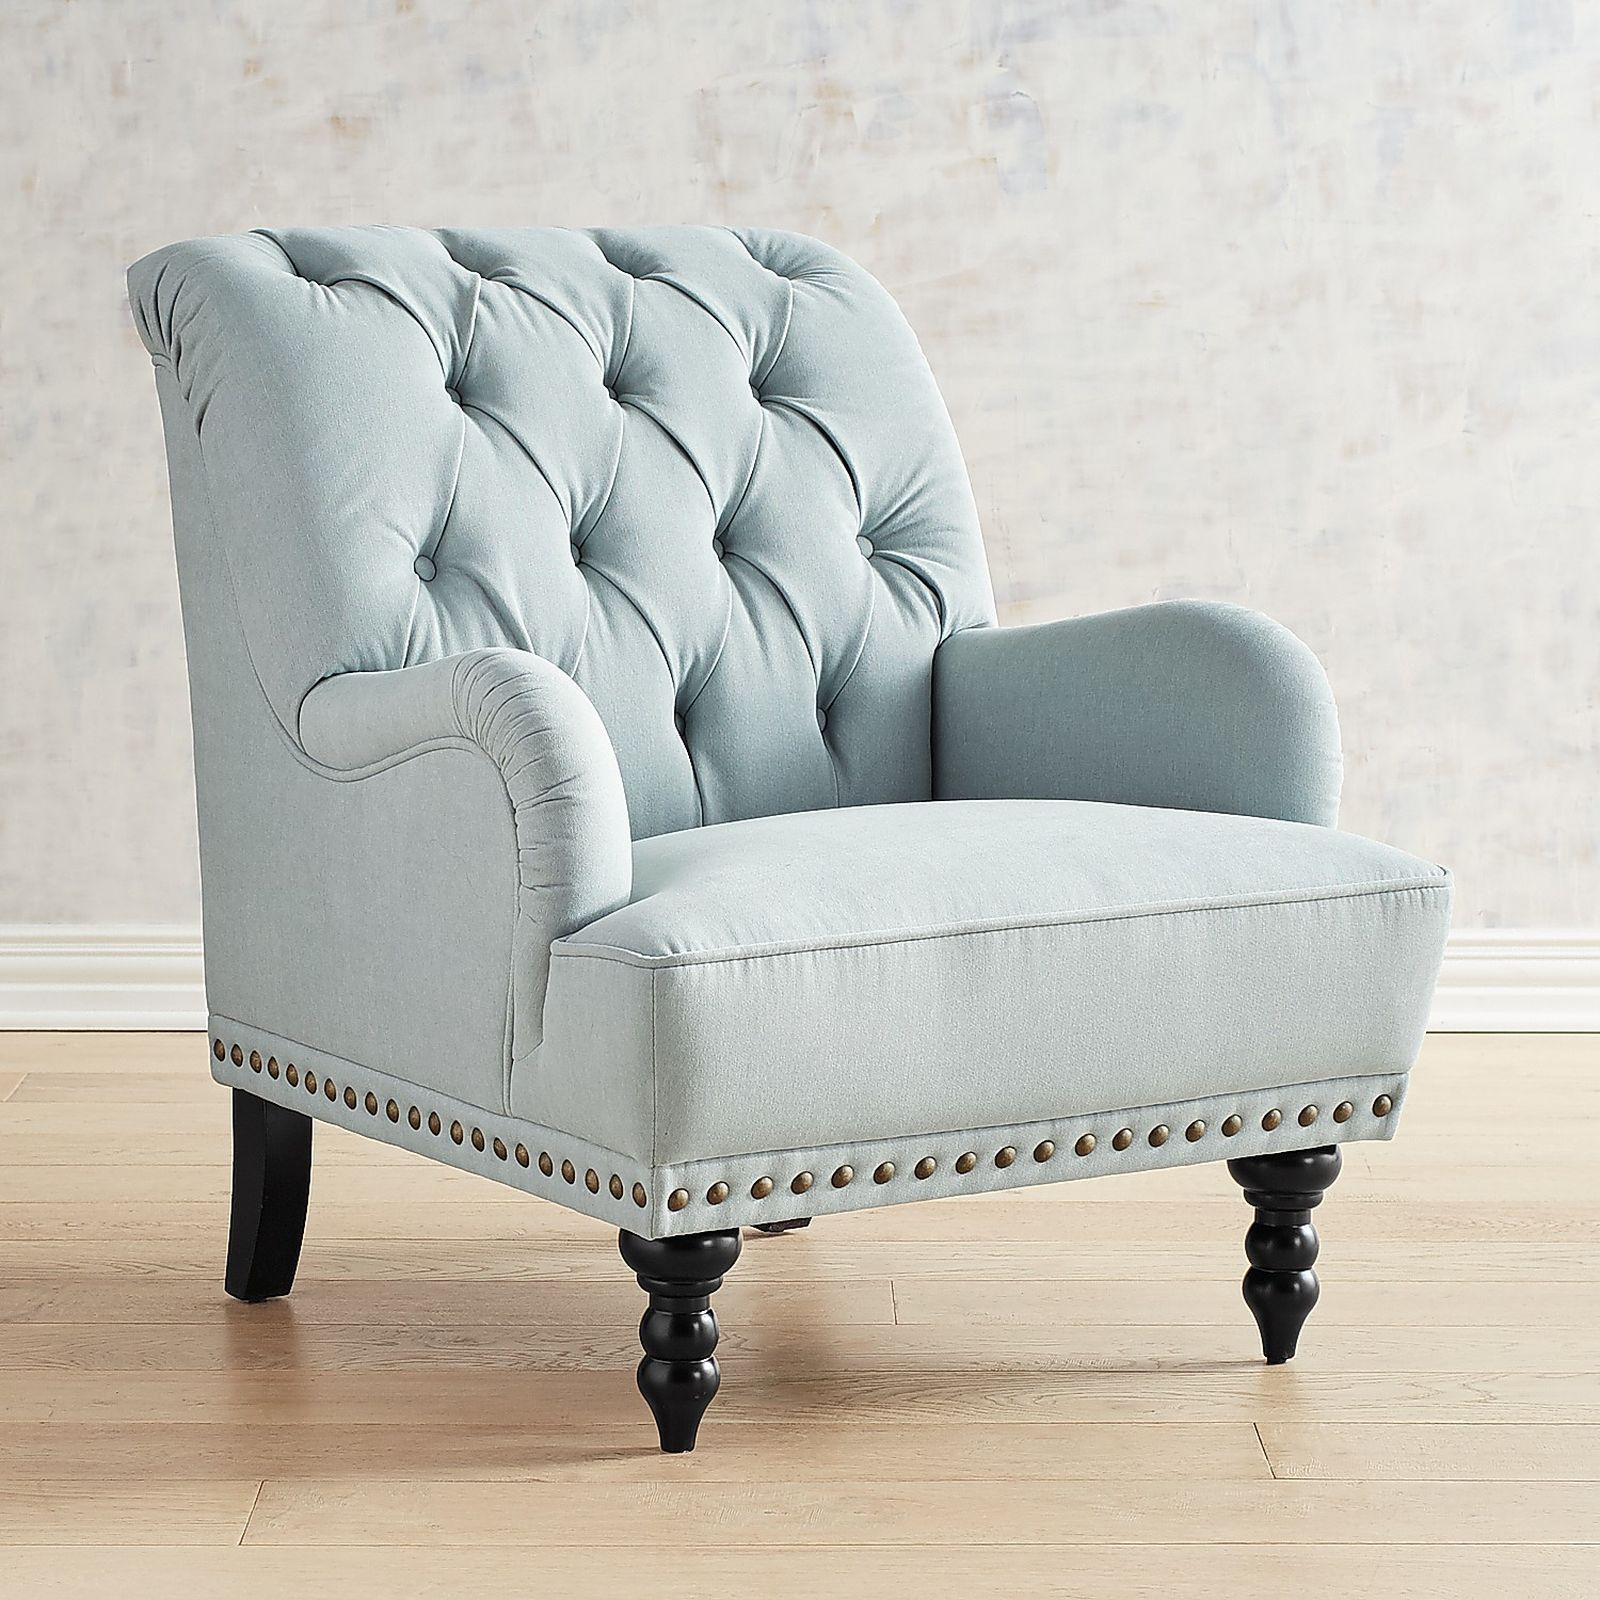 Chas Pierformance™ Light Blue Armchair | Pier 1 Imports